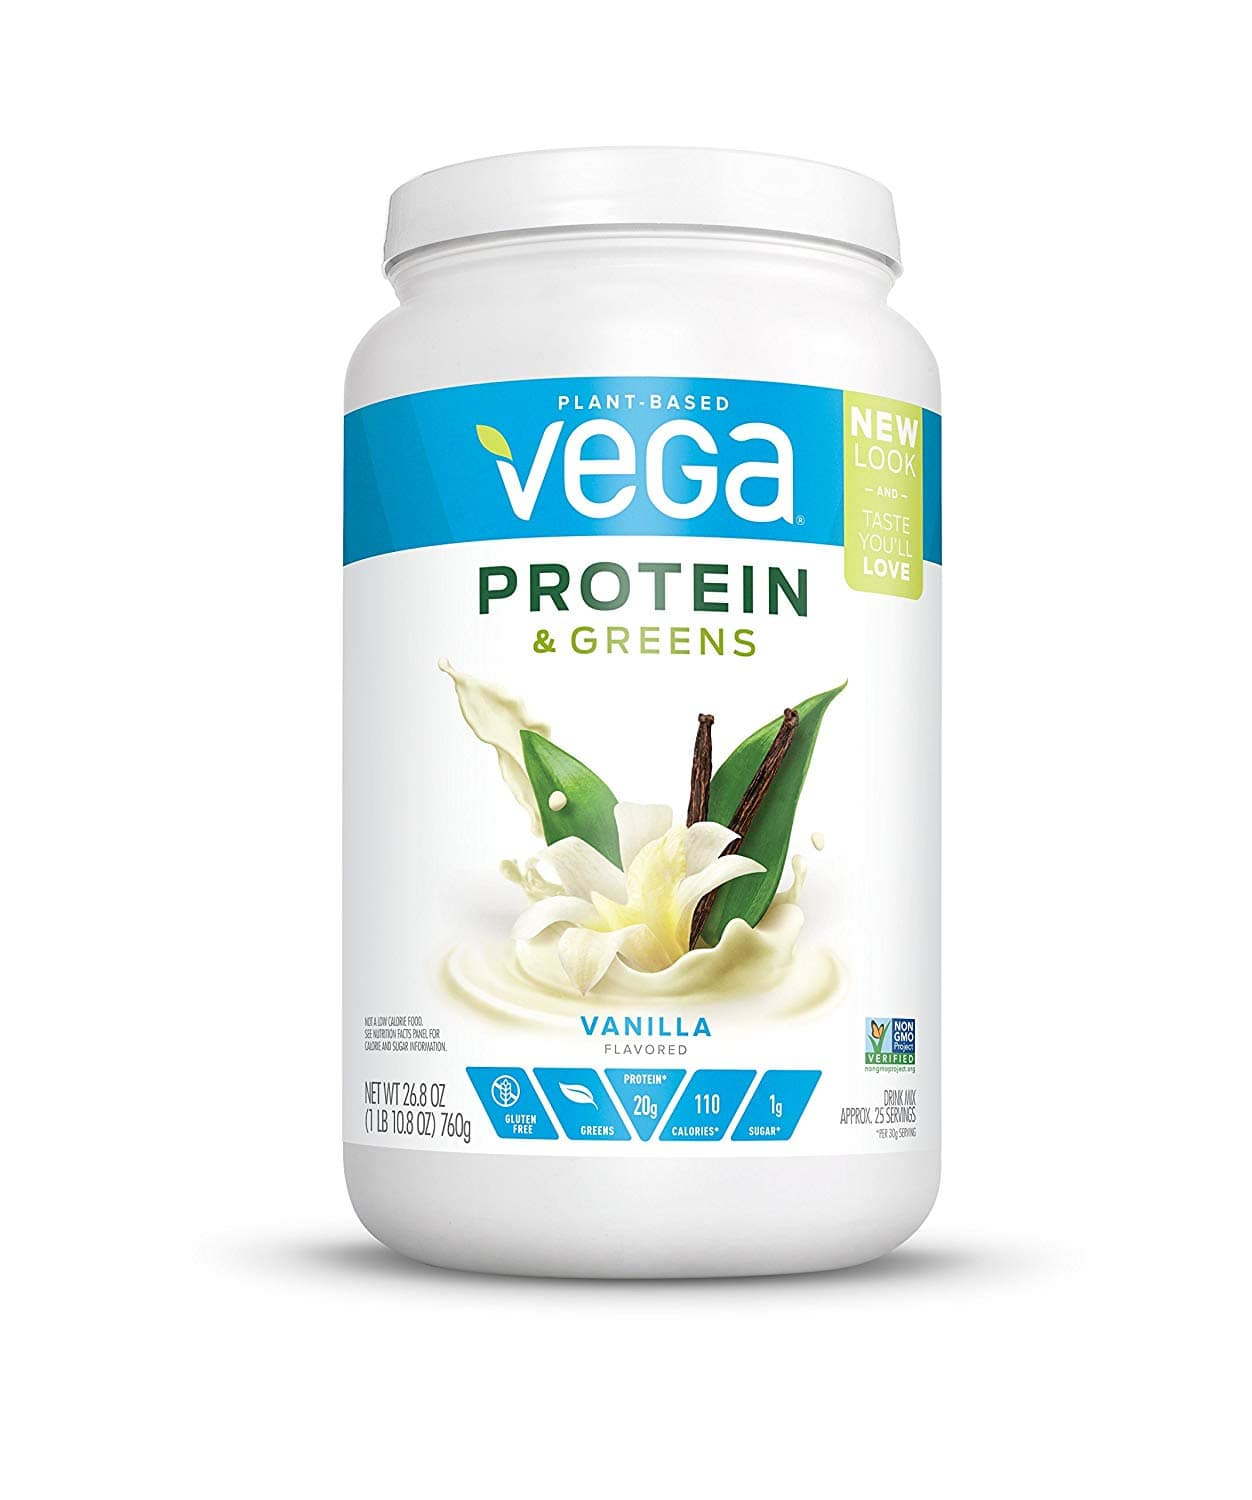 Vega Protein & Greens Vanilla (25 Servings, 26.8 oz tub) - Plant Based Protein Powder for $15.59 with Coupon and S&S and more.